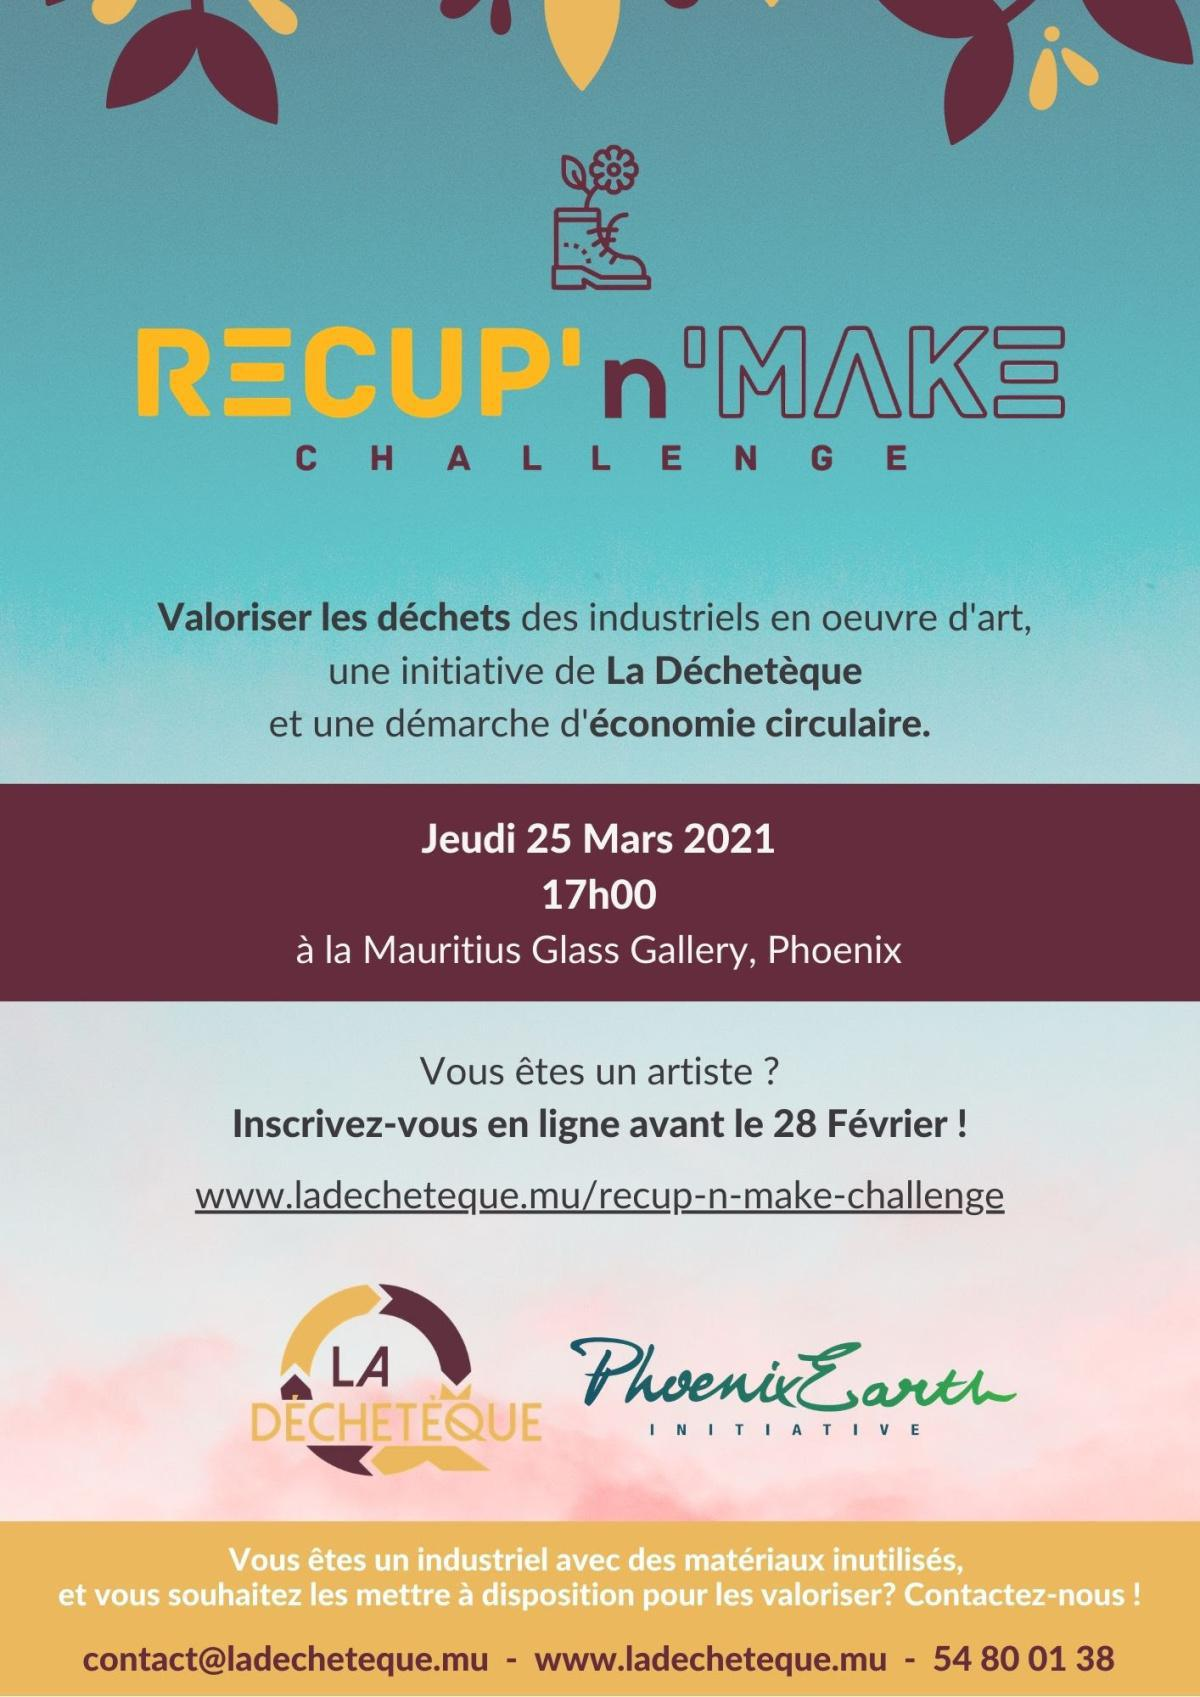 The Recup N Make Challenge: An initiative by La Déchetèque!